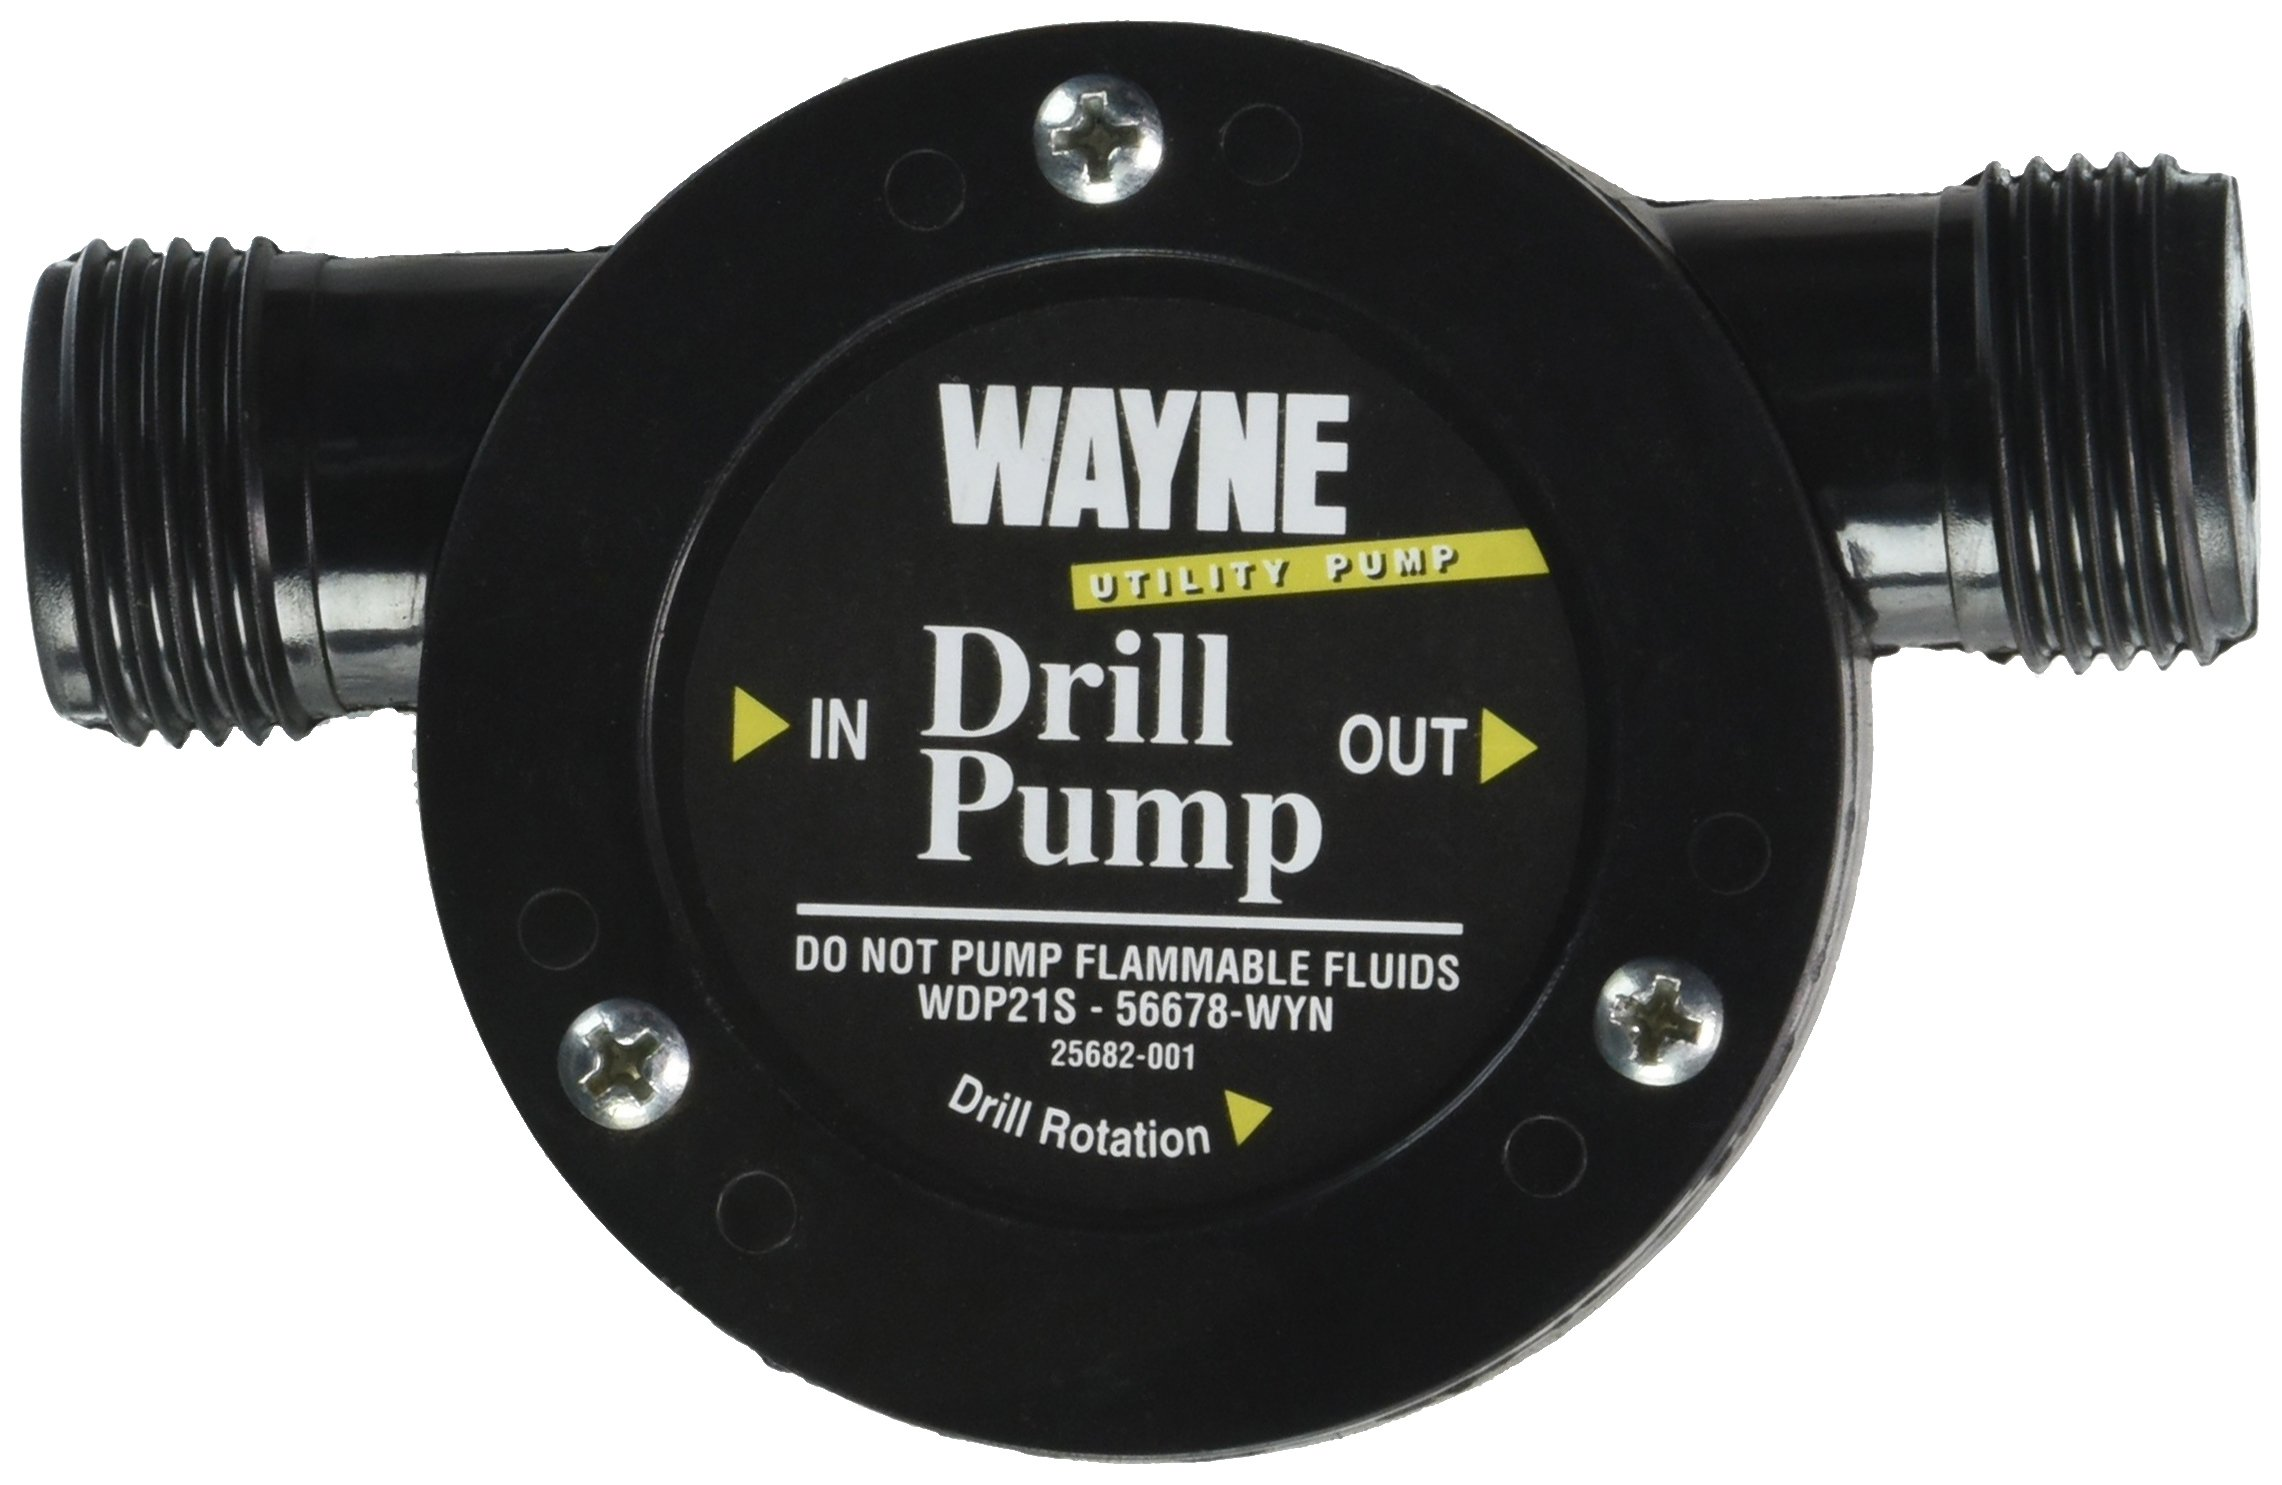 WAYNE WDP21S Light Duty Drill Pump With 3/4 in. Suction & Discharge by Wayne